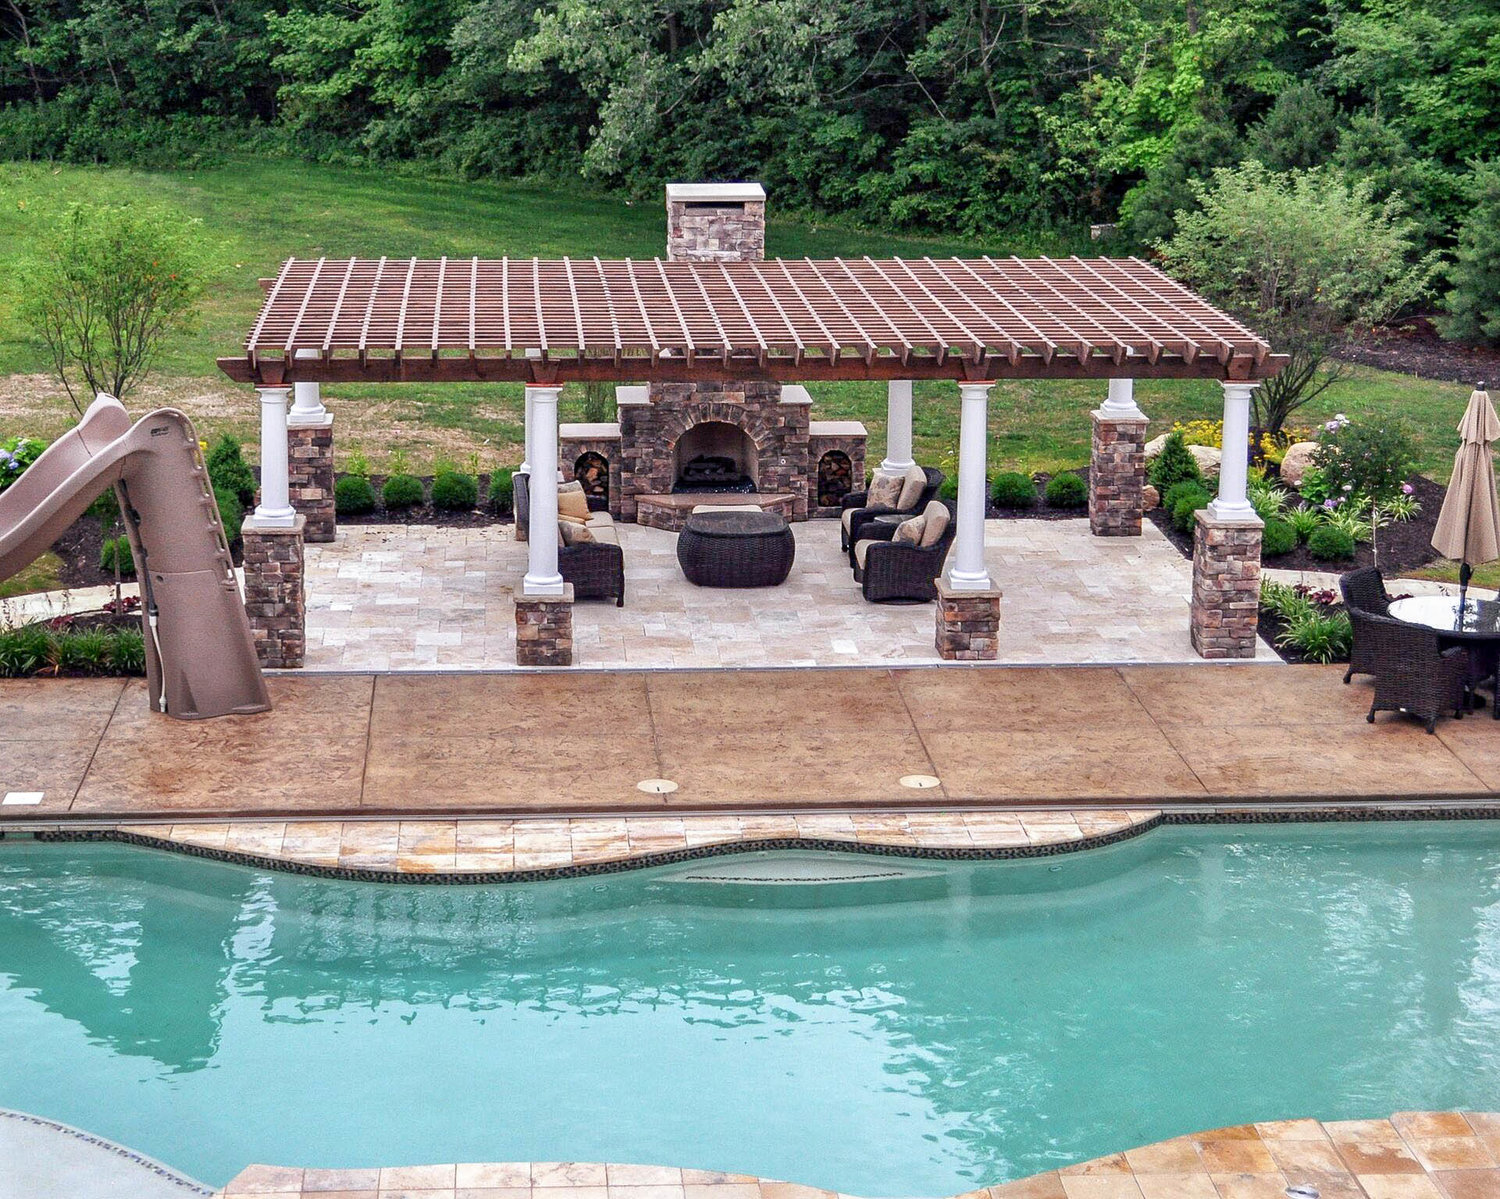 Summerbrook Outdoors - Thatcher Pools and Spas on Outdoor Kitchen By Pool id=64542